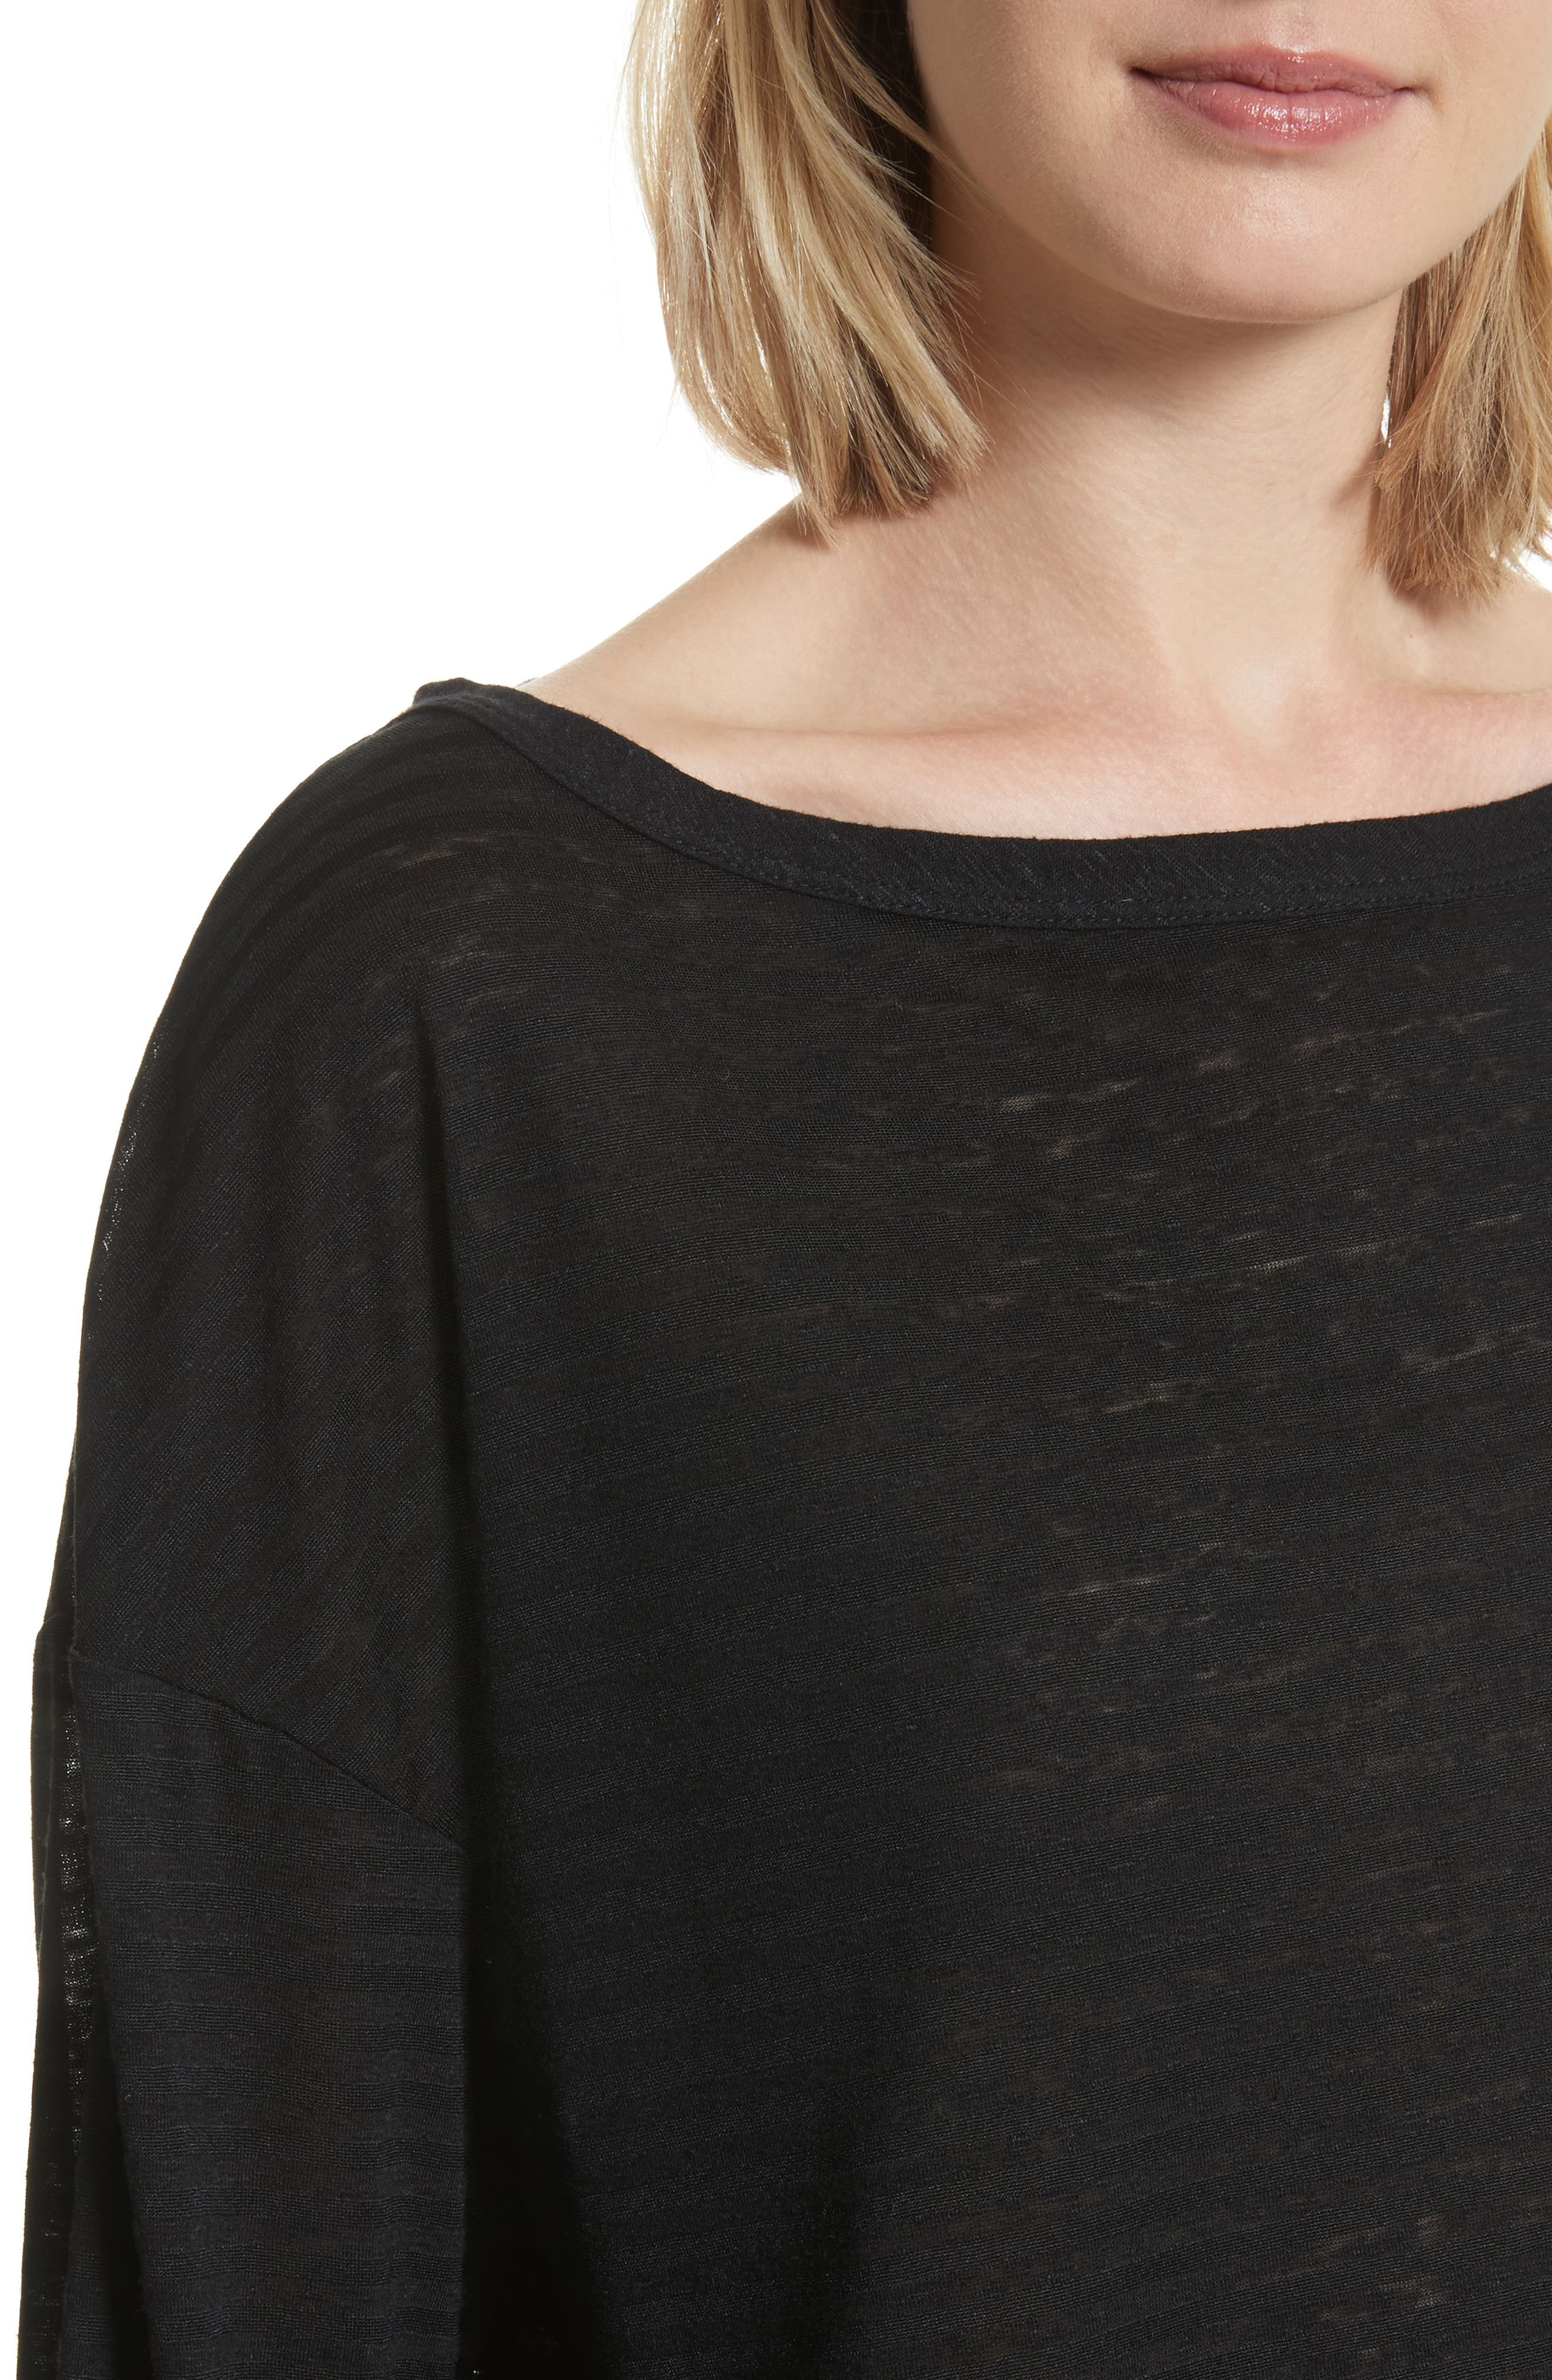 Holton Boat Neck Crop Tee,                             Alternate thumbnail 4, color,                             001